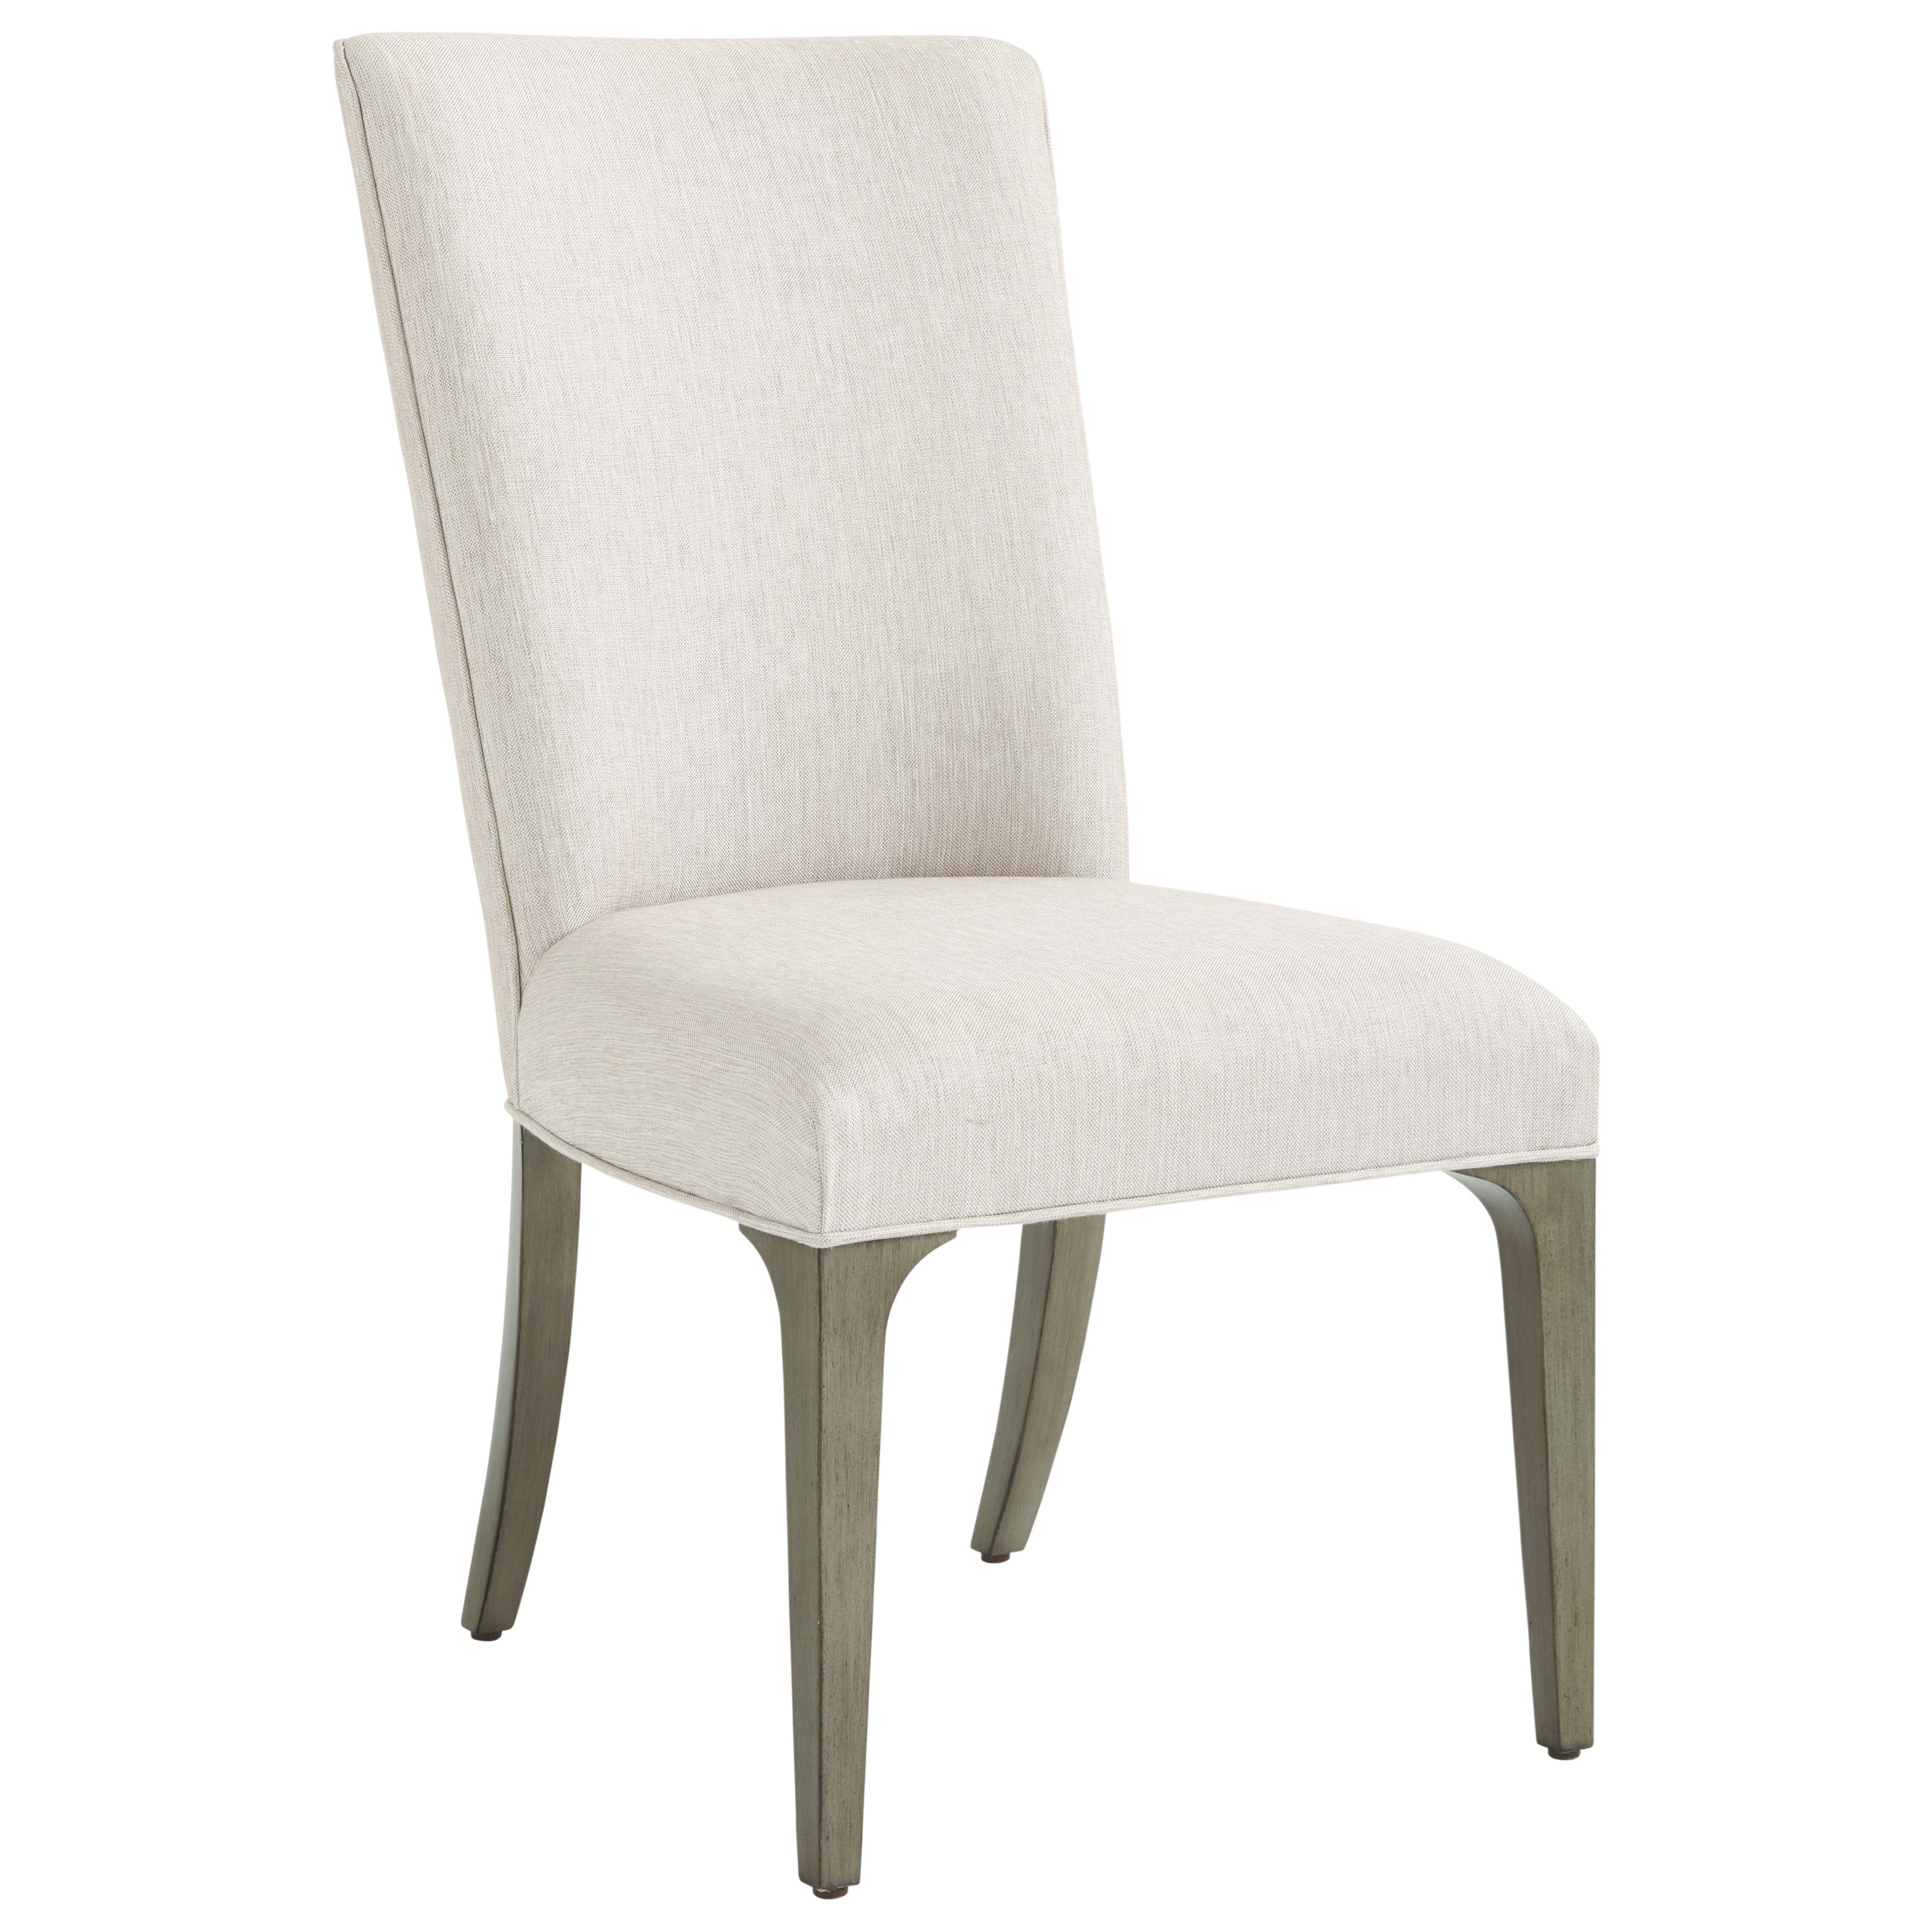 Ariana Bellamy Upholstered Side Chair (married fab) by Lexington at Fisher Home Furnishings